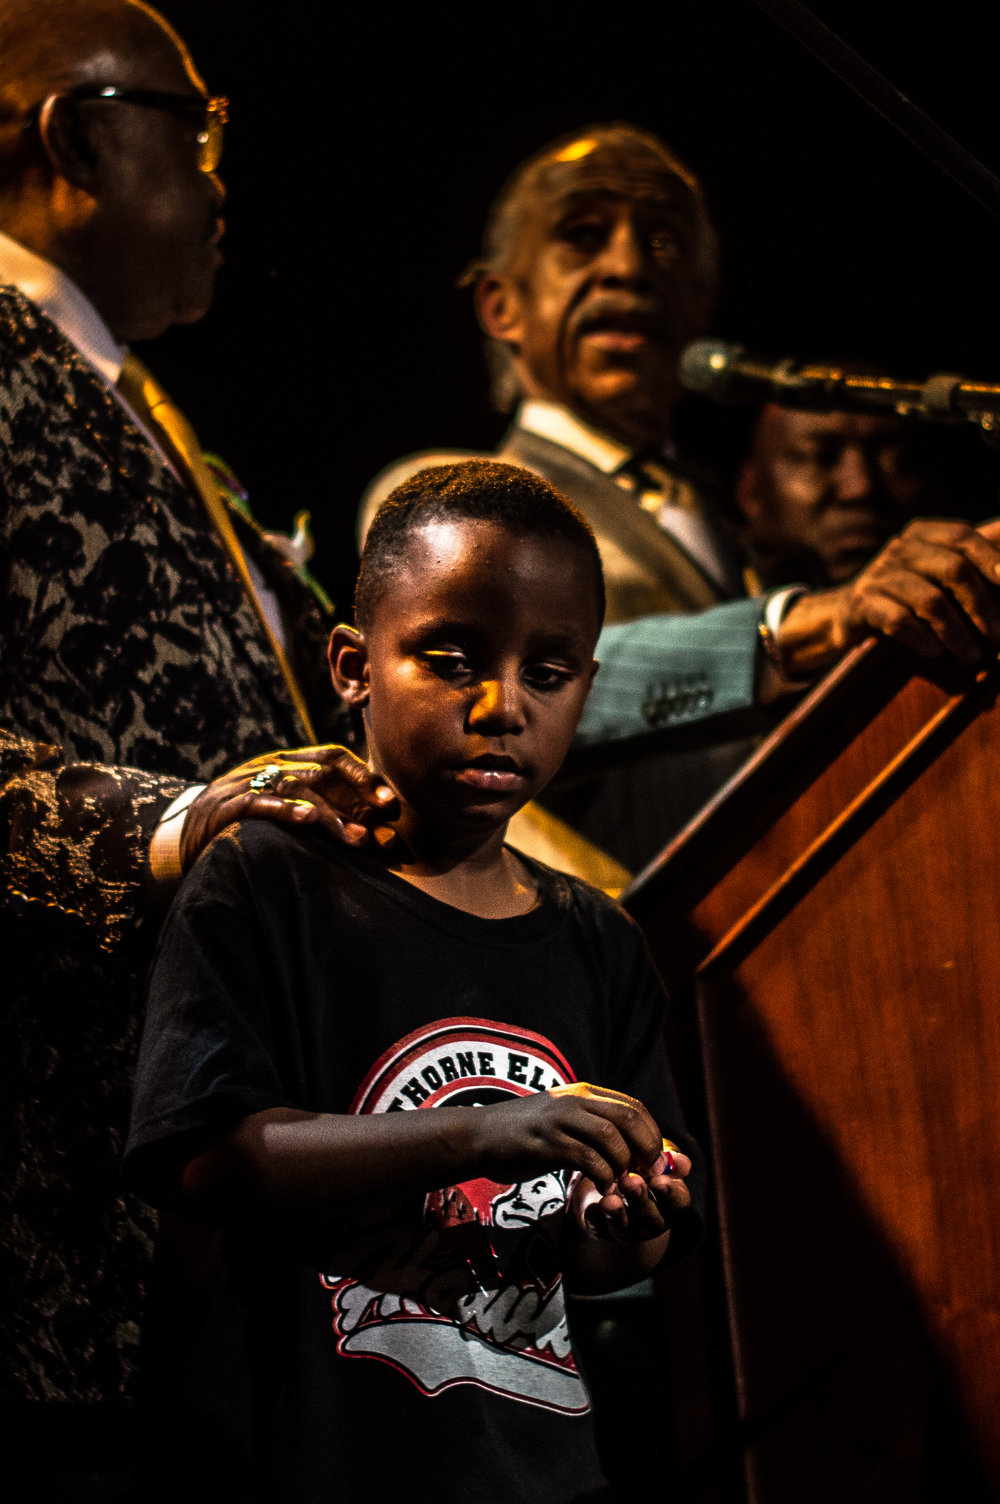 May 10, 2017.  8:34 P.M.  Terence Crutcher's 4 year old son on Stage with Al Sharpton at the Prayer and call for Justice Rally.  Downtown Tulsa.